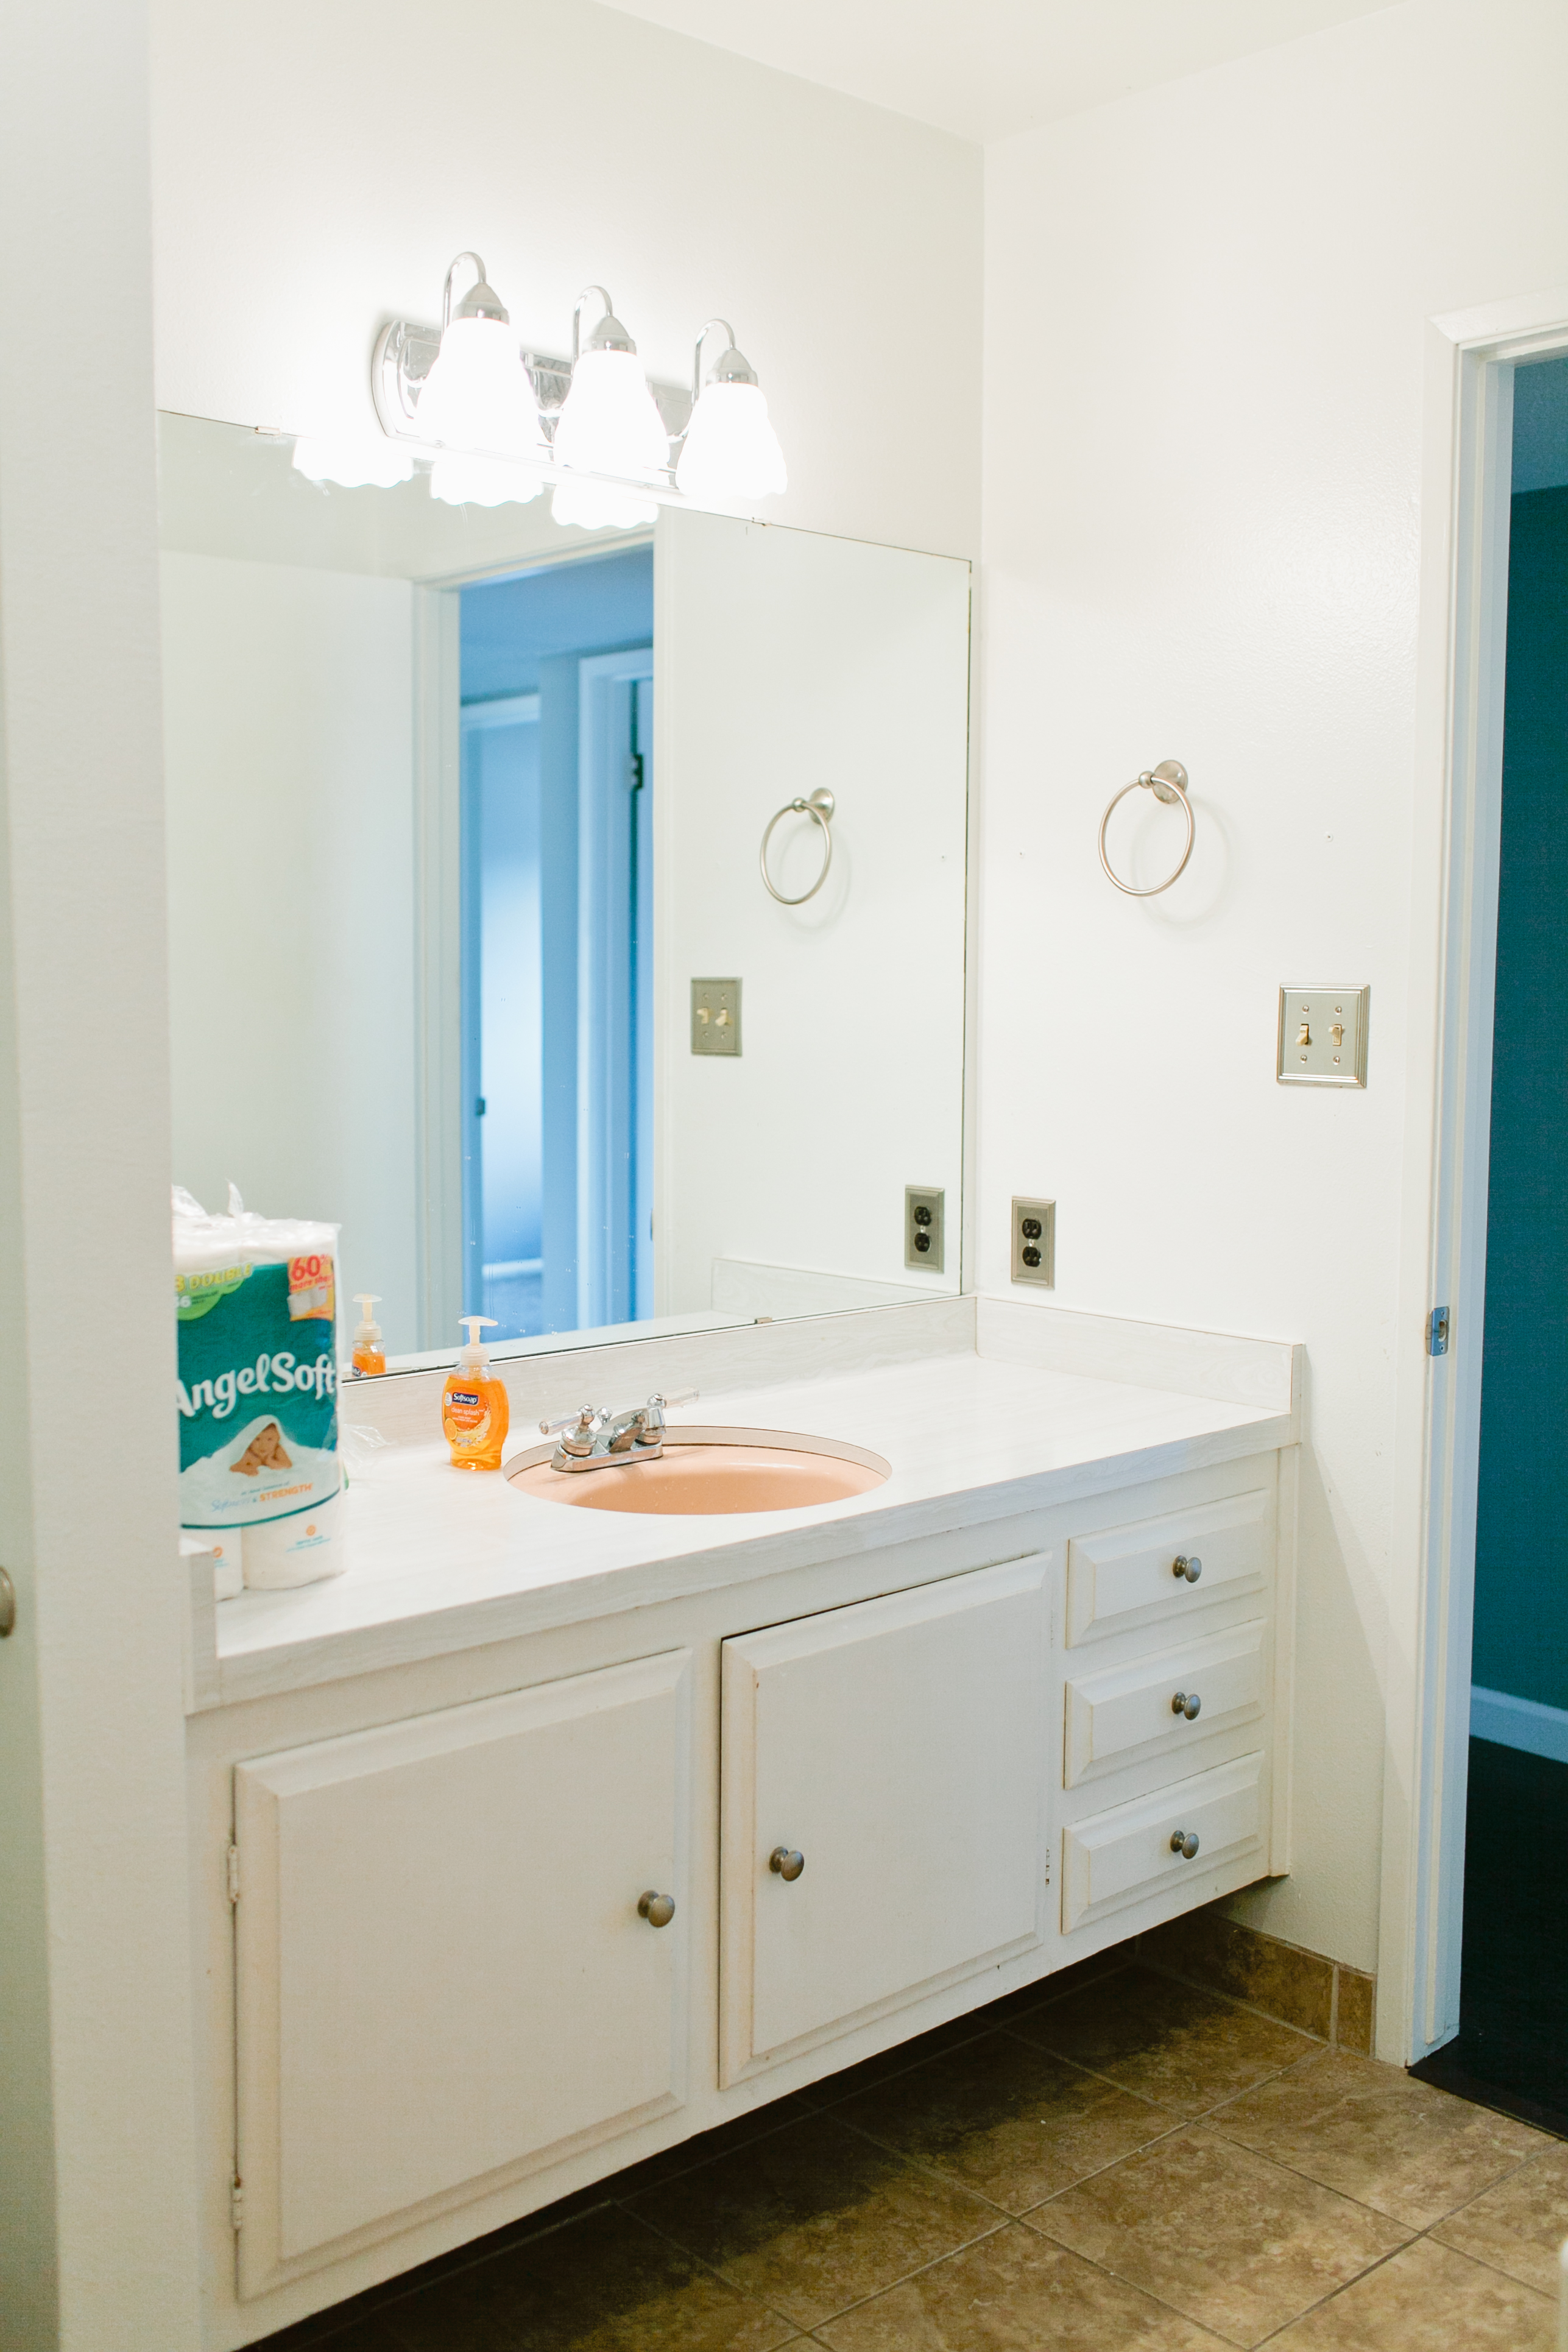 Our Guest Bathroom Renovation (Finally) – Day One (and two)